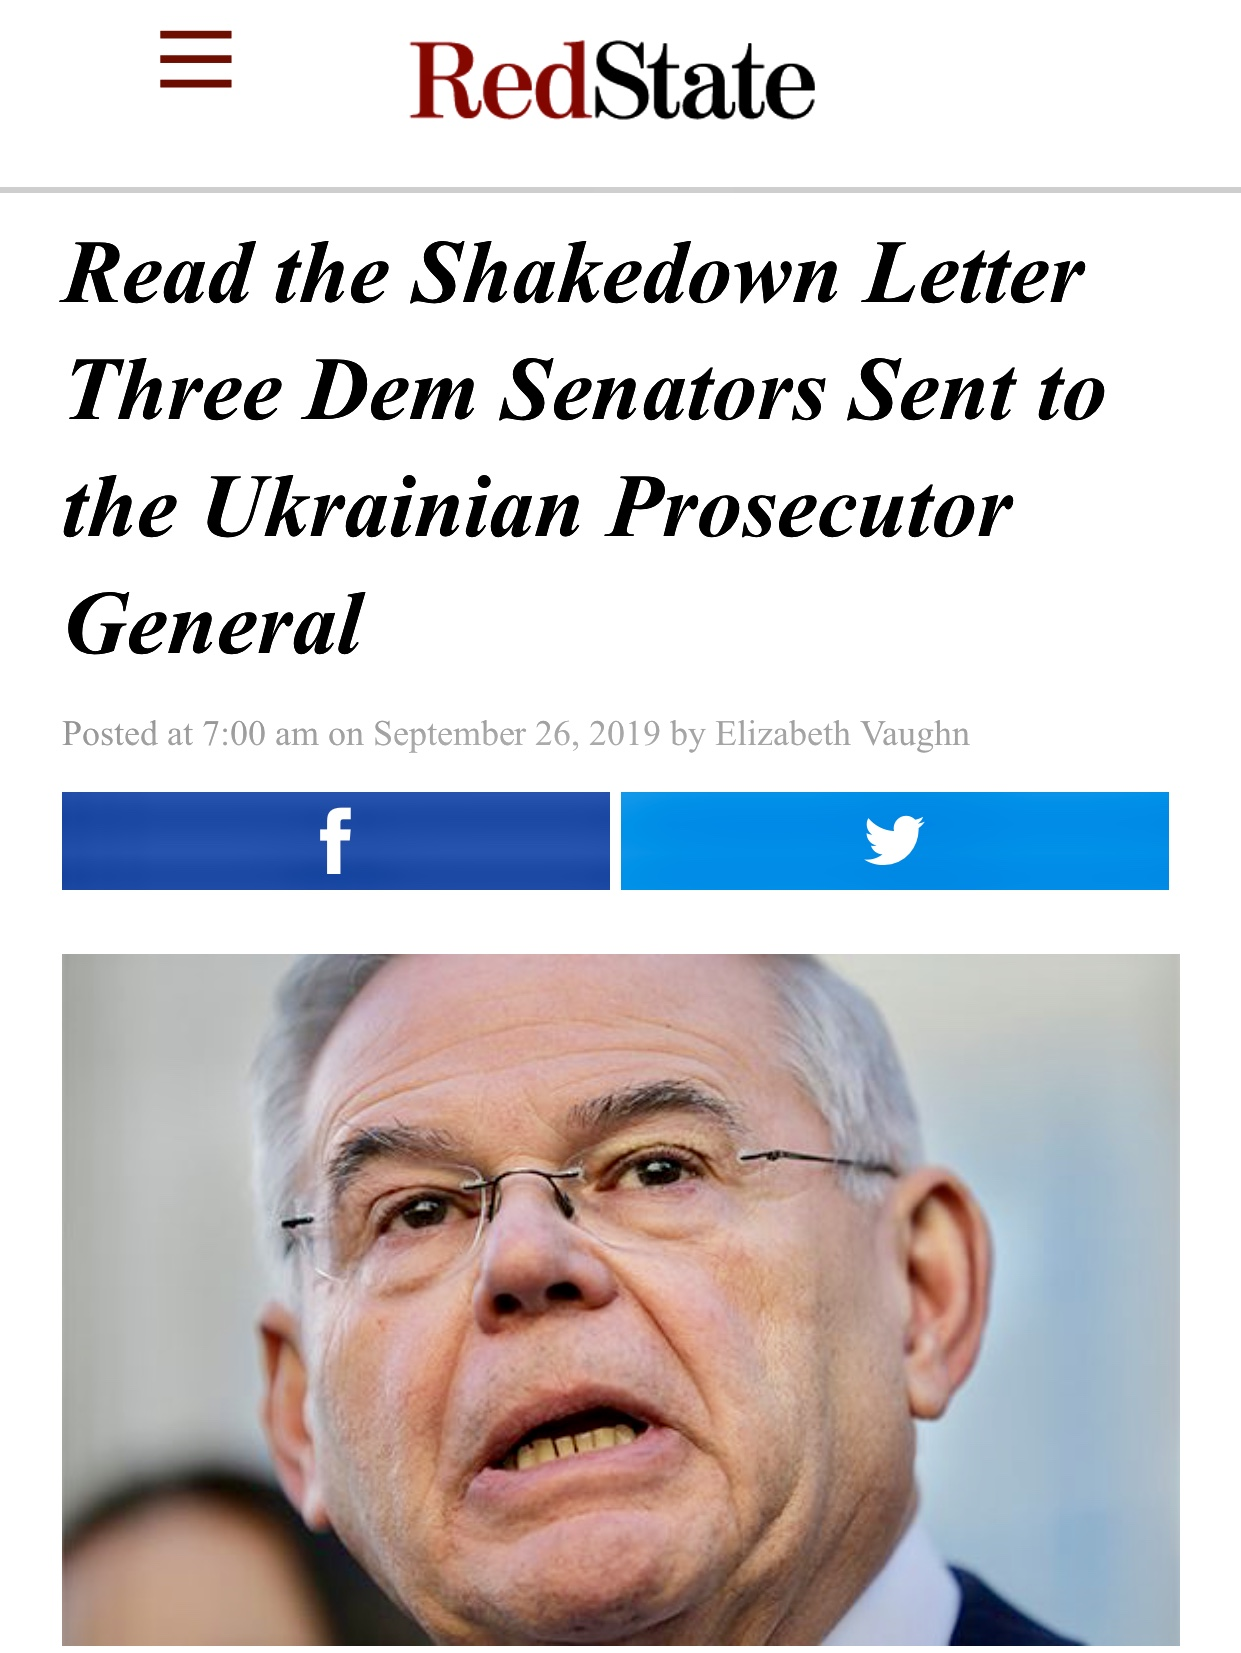 Read the Shakedown Letter Three Dem Senators Sent to the Ukrainian Prosecutor General